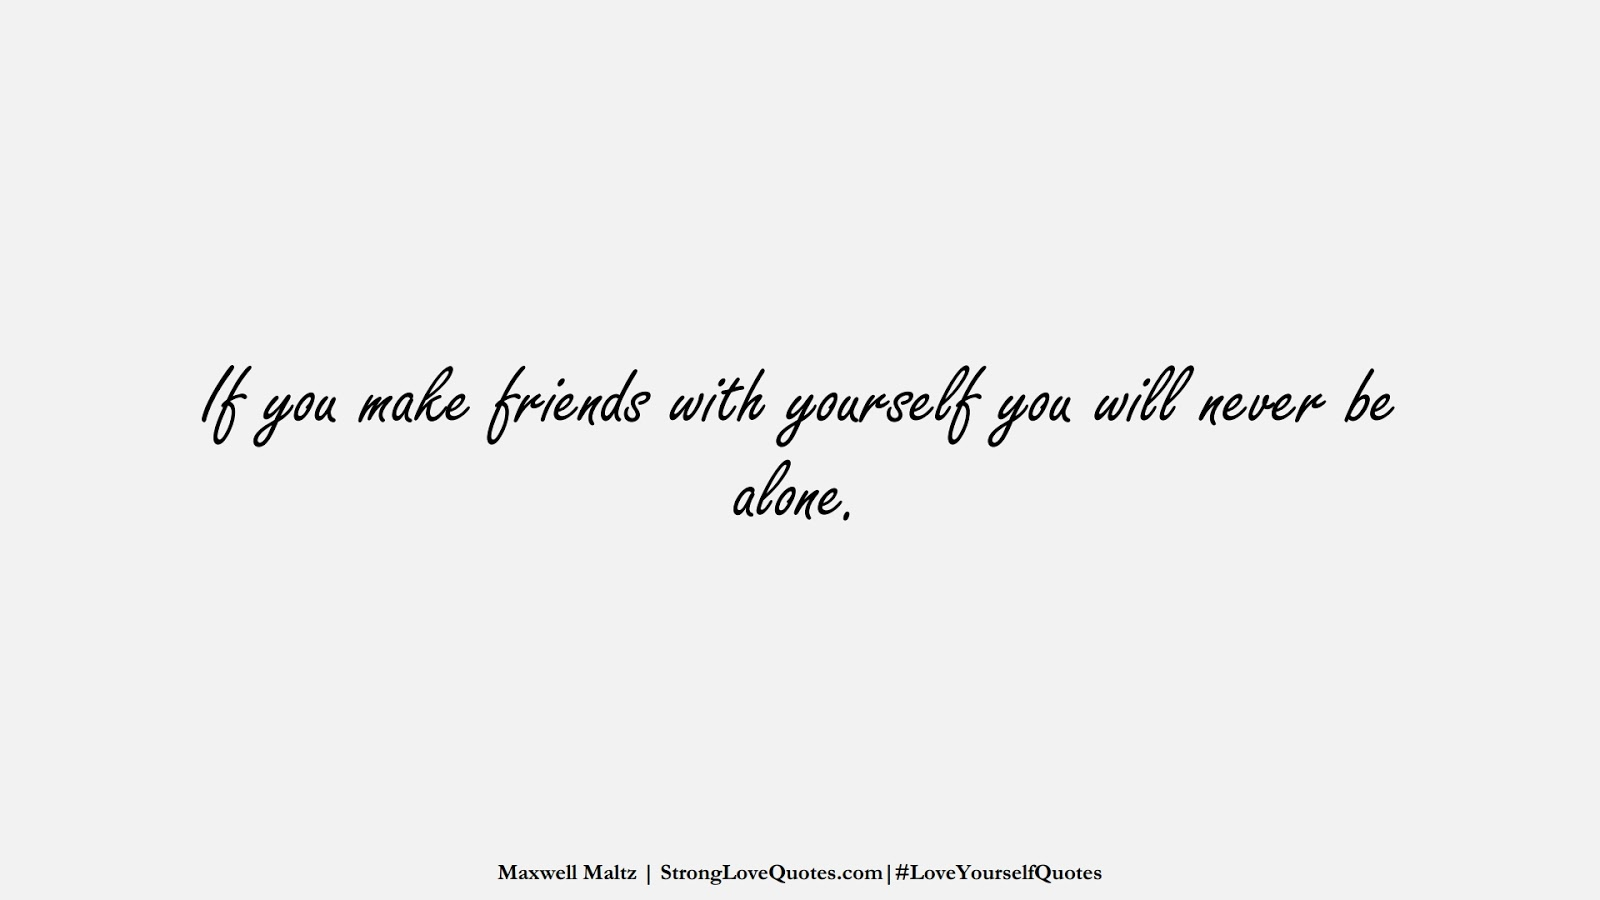 If you make friends with yourself you will never be alone. (Maxwell Maltz);  #LoveYourselfQuotes